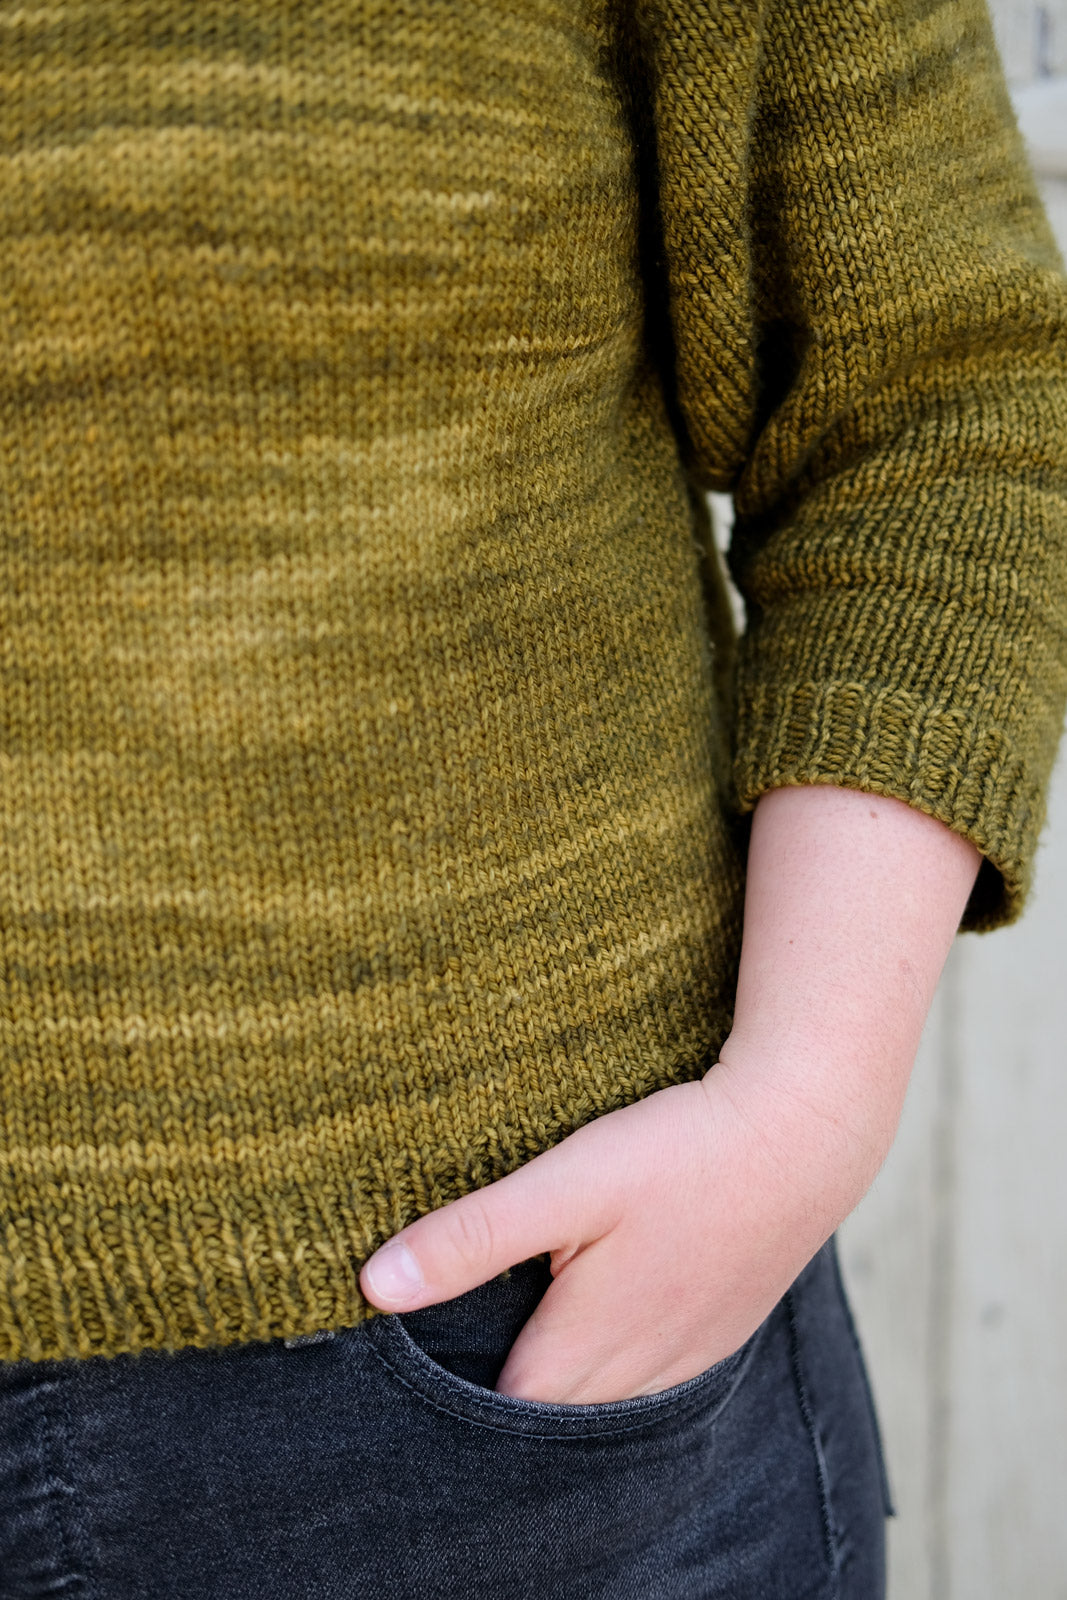 Detail of Madelinetosh DK in Oak colorway